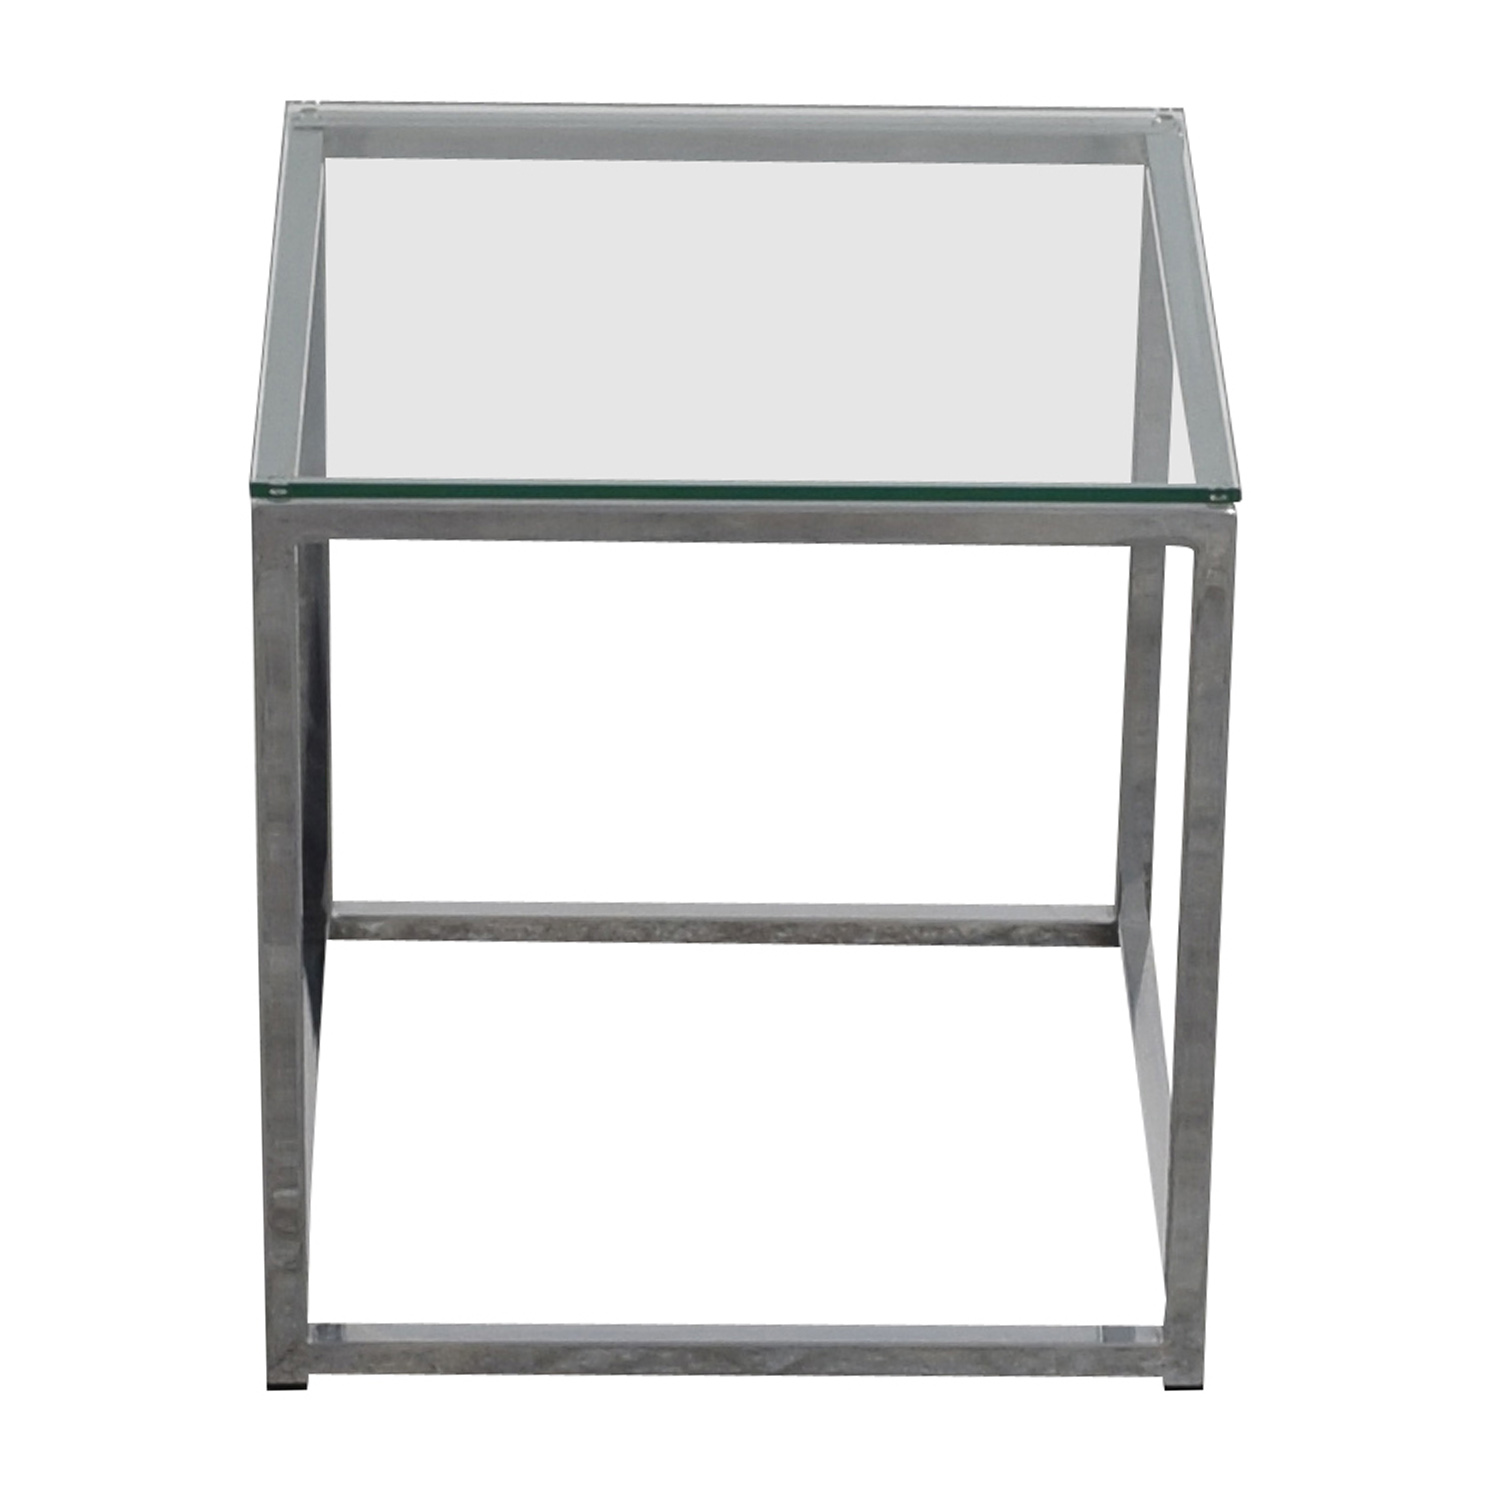 CB2 CB2 Smart Glass Top Side Table nyc